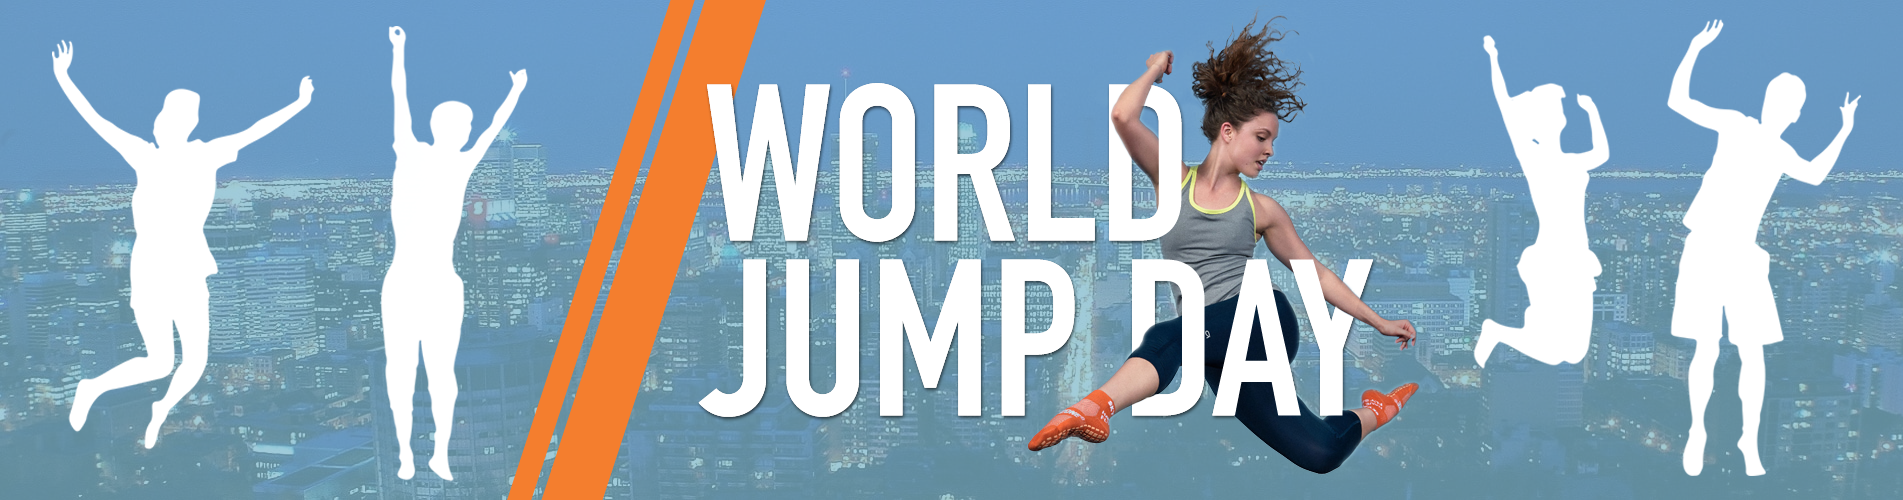 World Jump Day